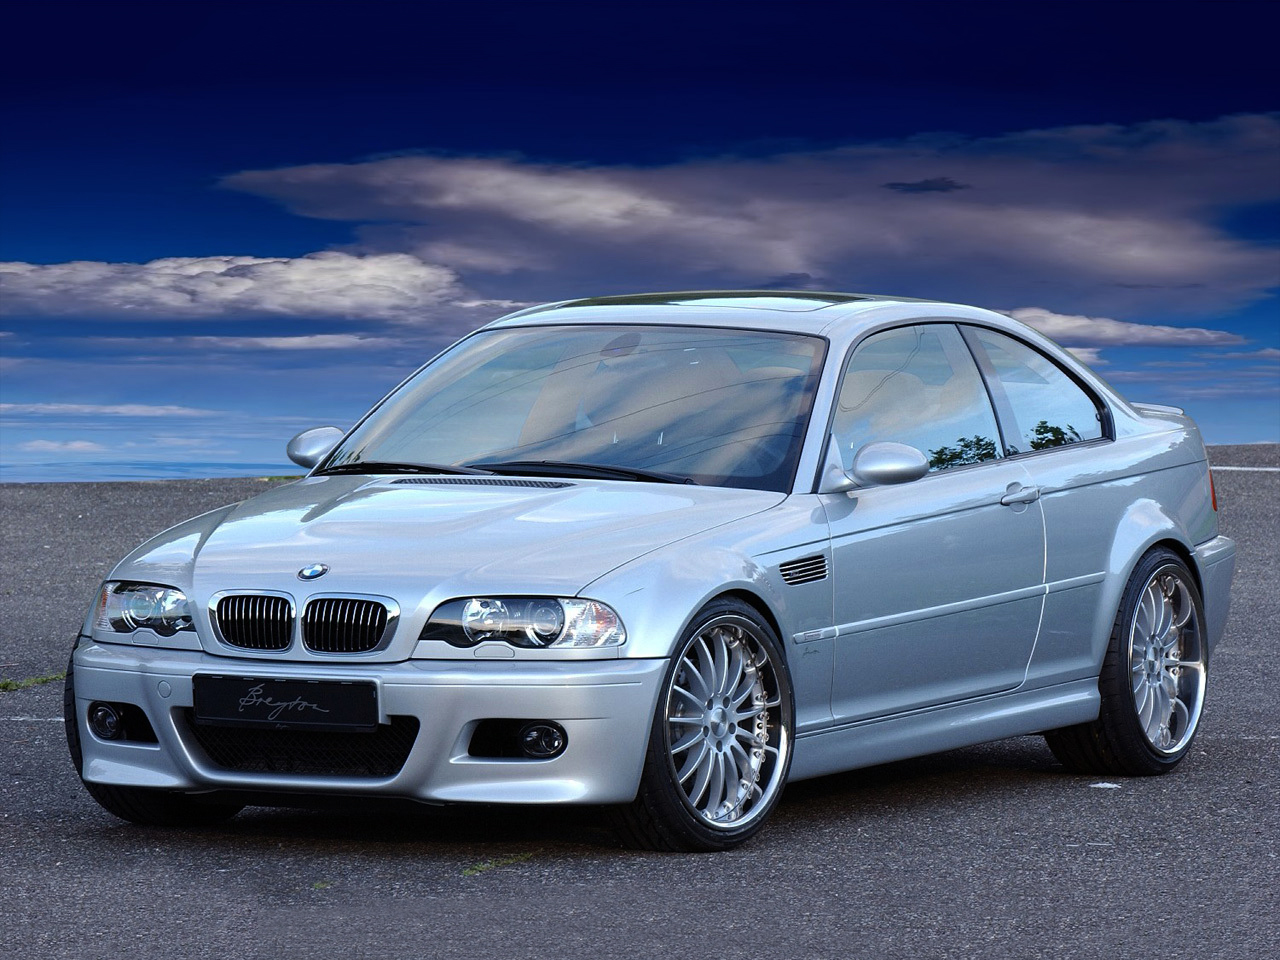 bmw e46 wallpaper wallpapersafari. Black Bedroom Furniture Sets. Home Design Ideas